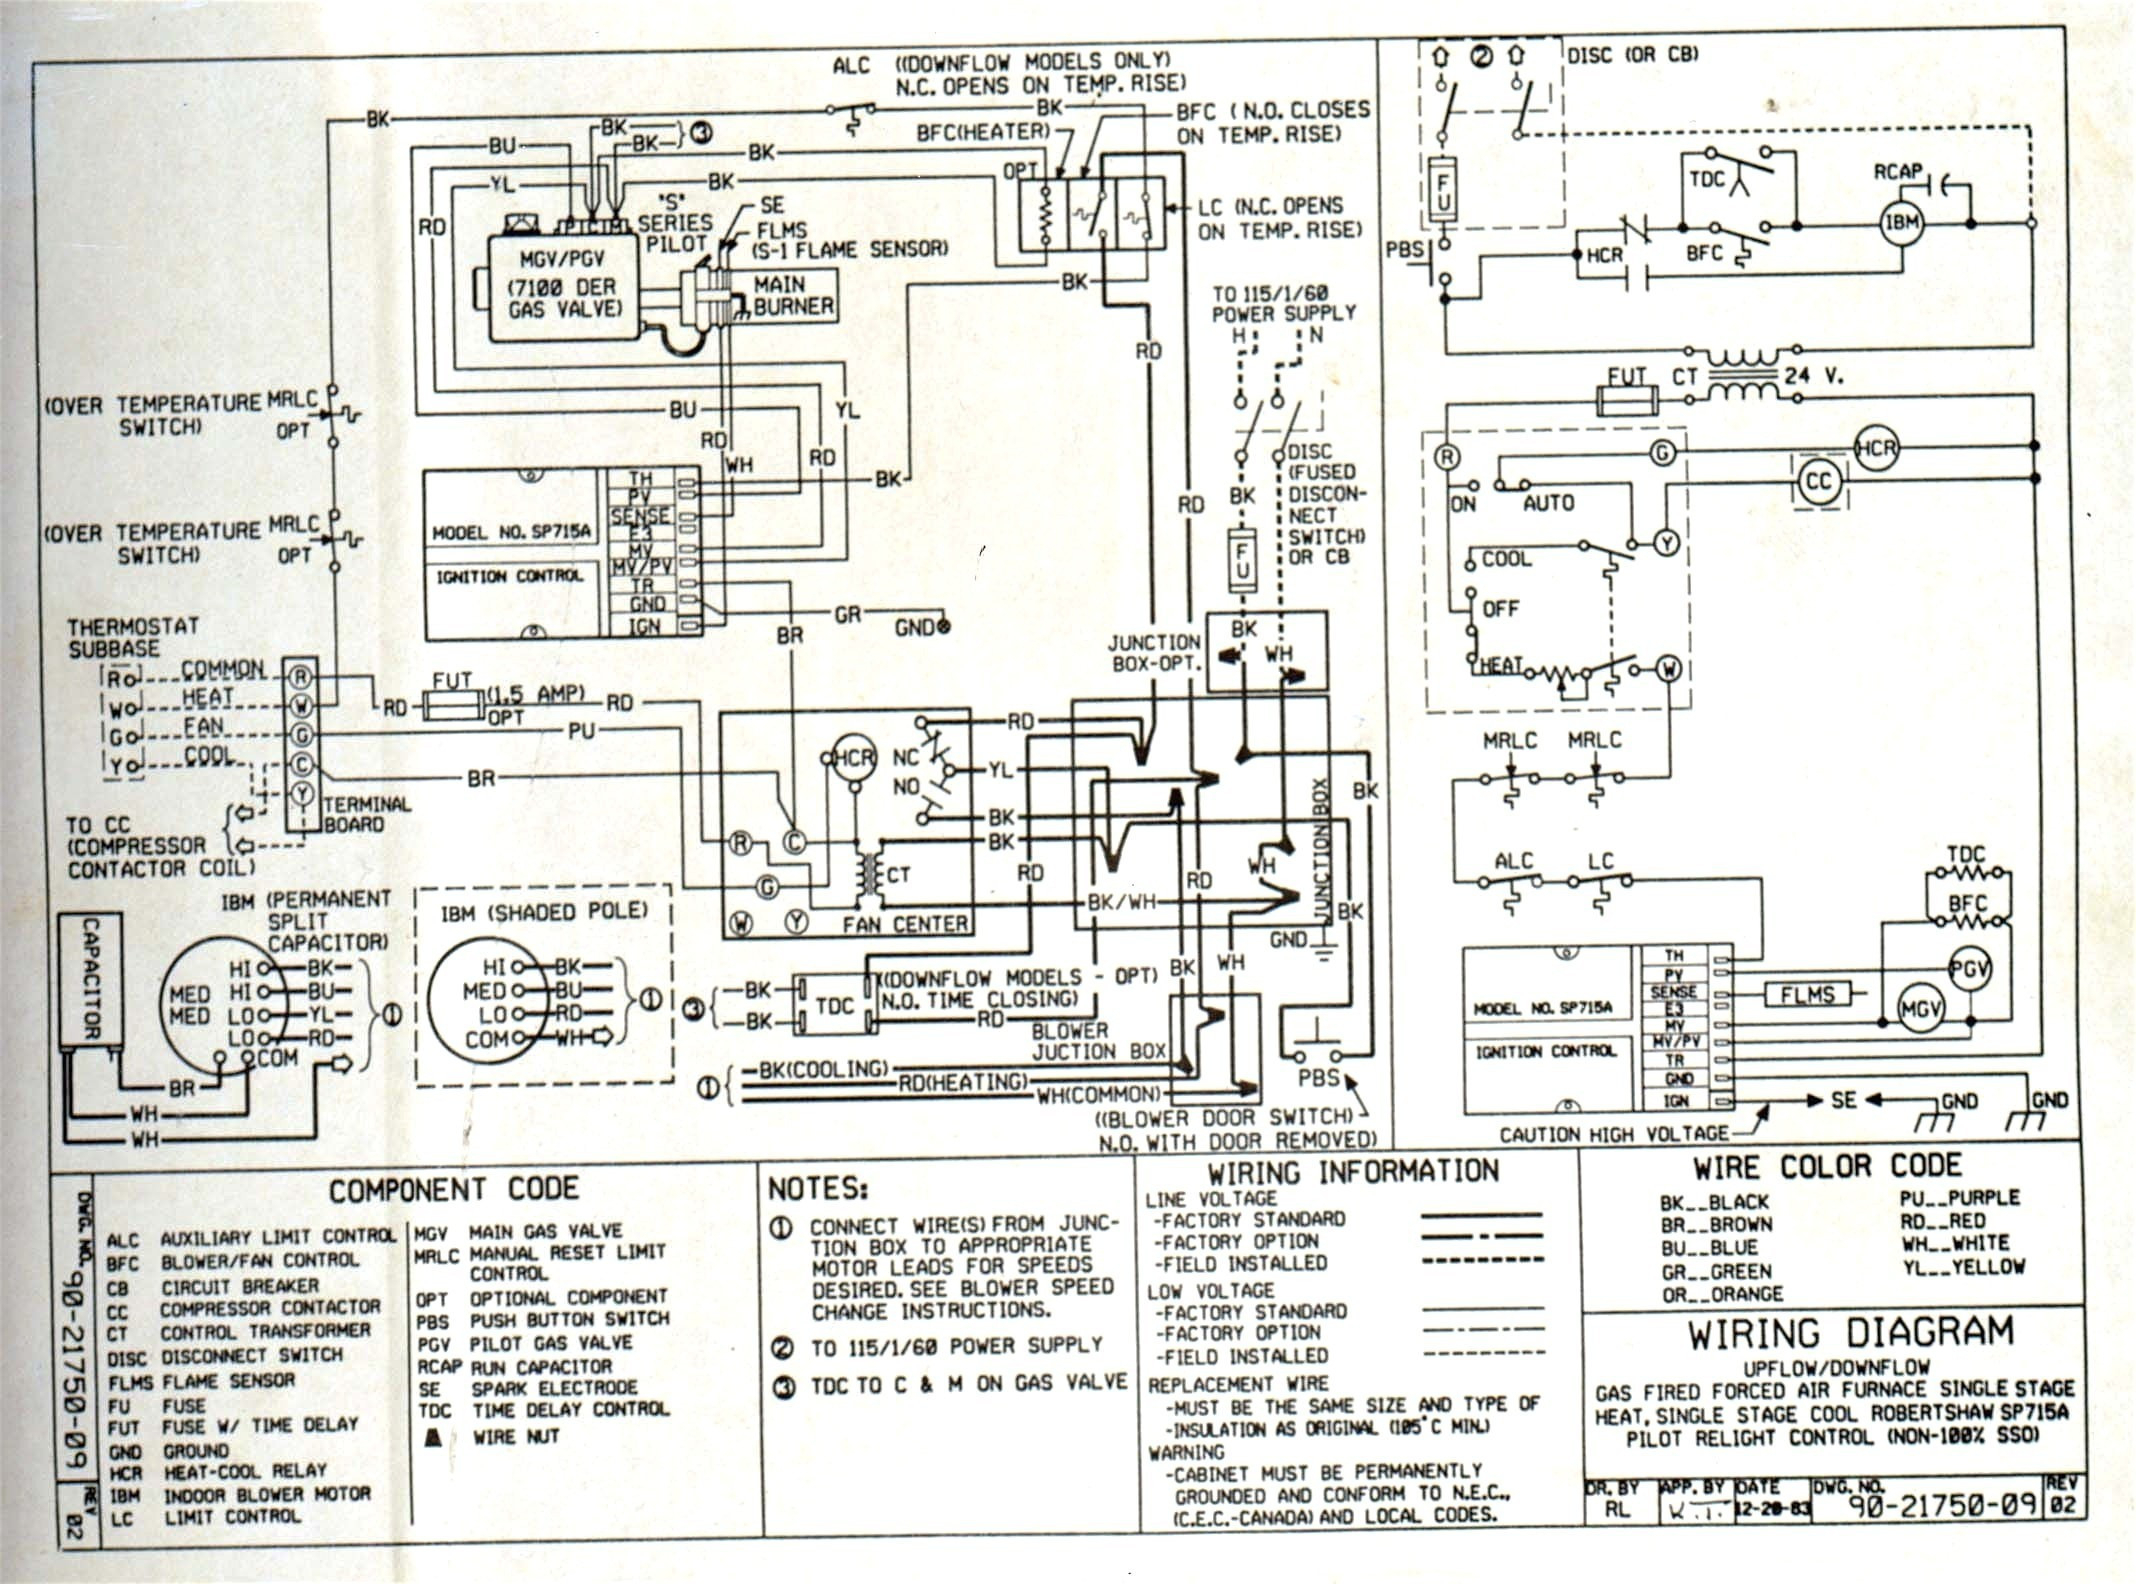 carrier air handler wiring diagram Collection-carrier ac wiring diagram Collection Wiring Diagram Ac Split Sanyo Fresh Wiring Diagram Indoor Ac 5-p